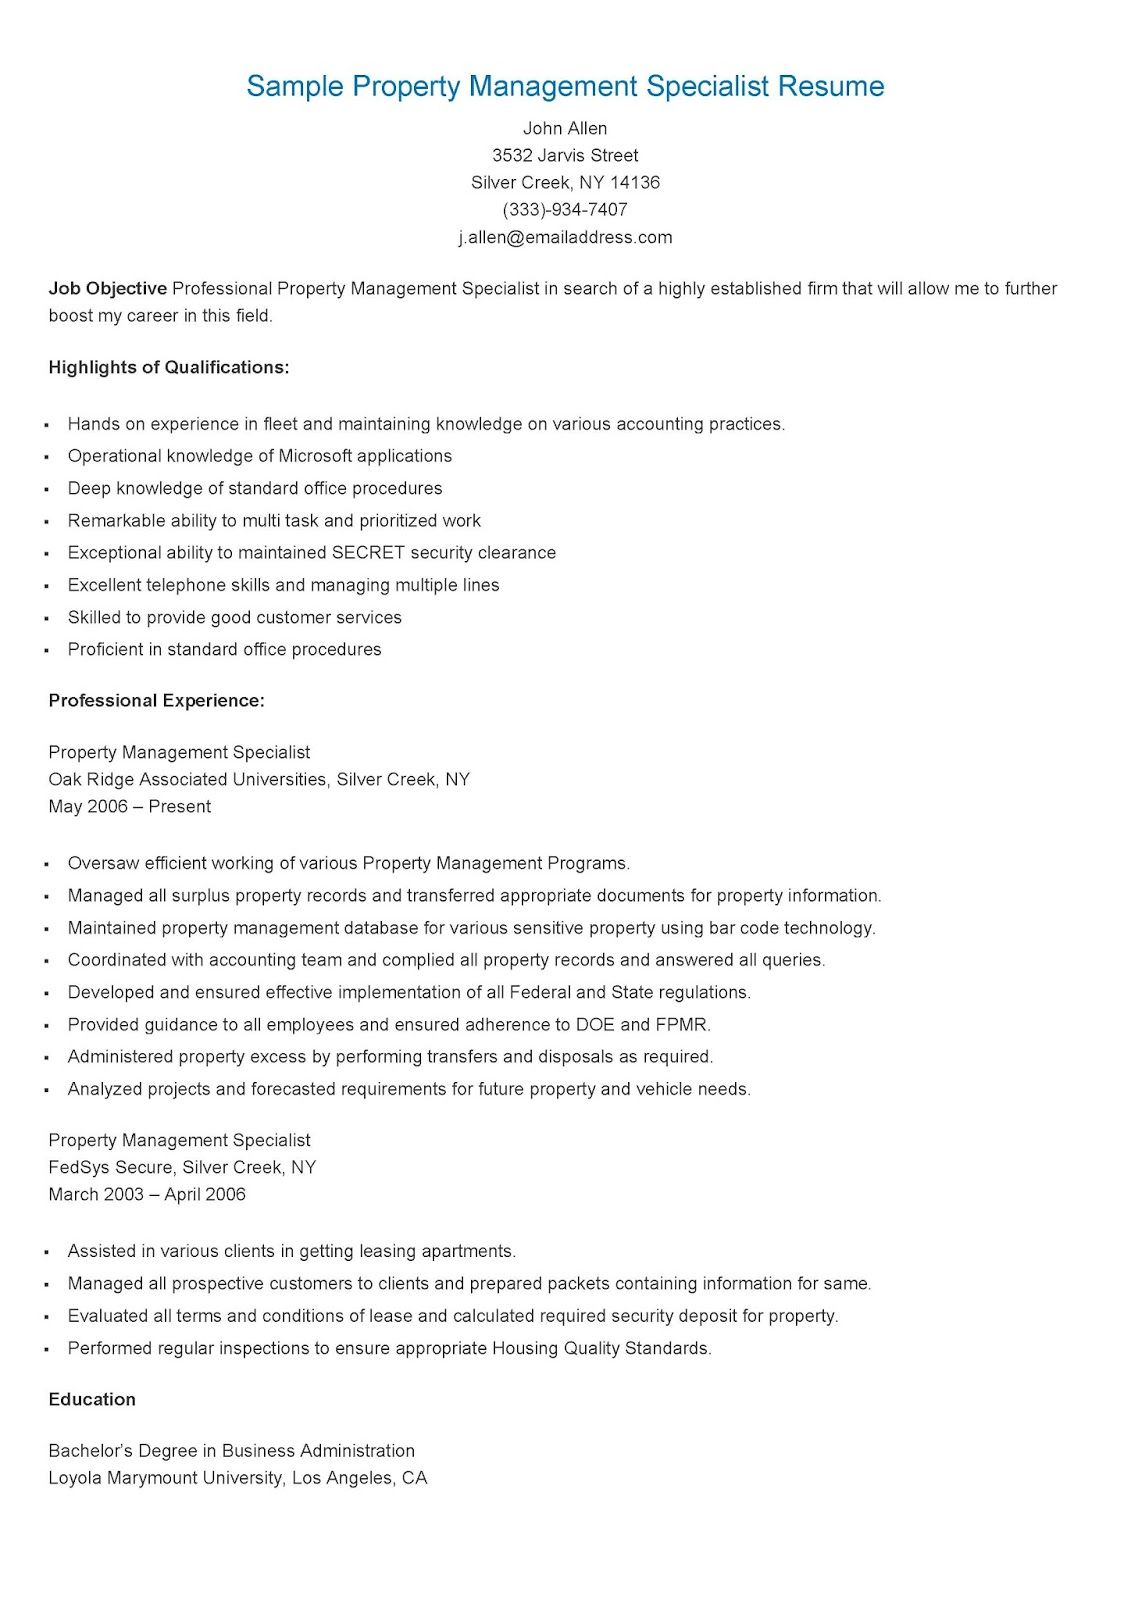 sample property management specialist resume